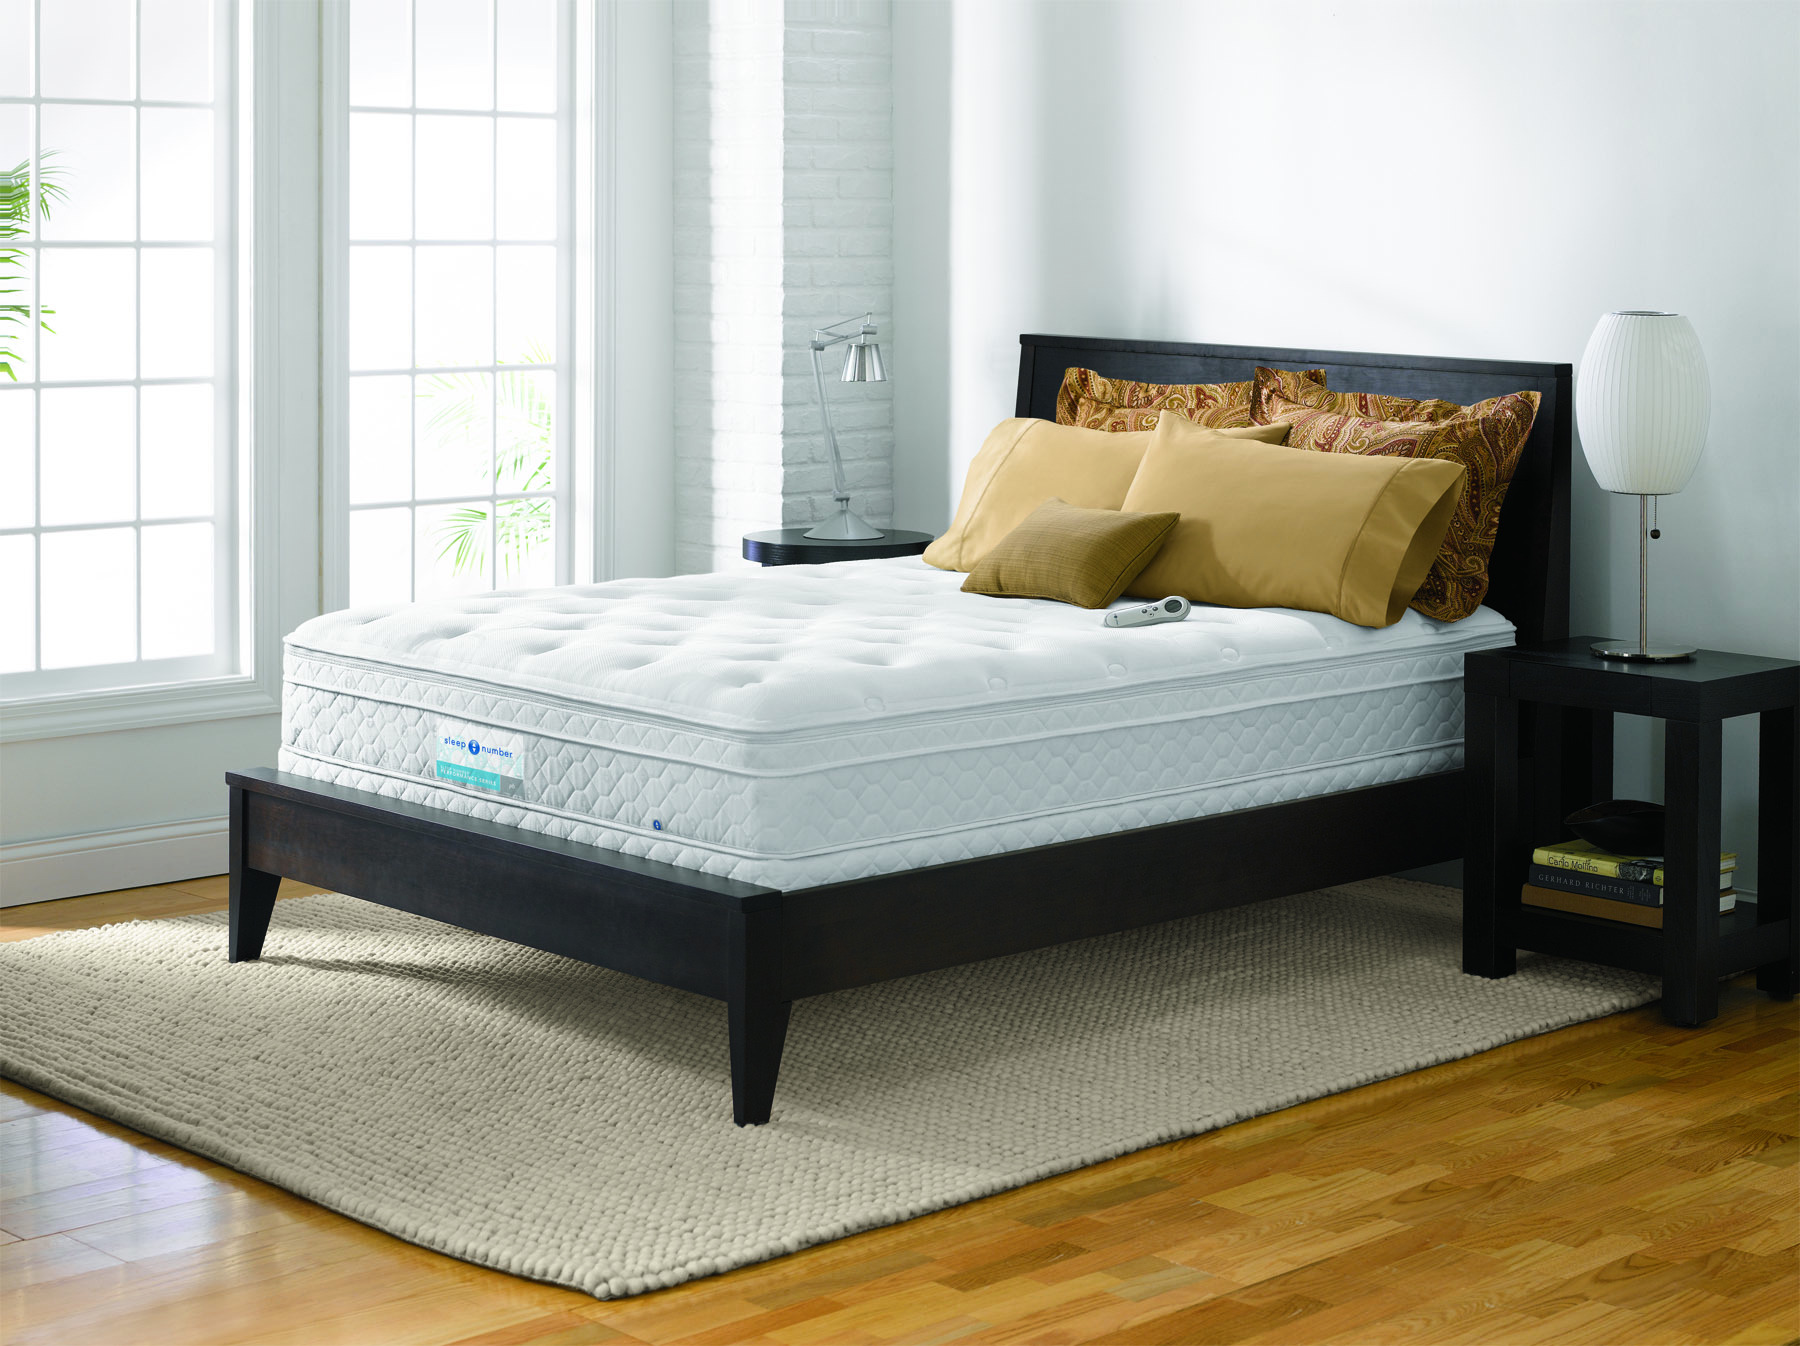 Sleep Number Mattress Reviews >> Sleep Number Performance Series - Mattress Reviews ...